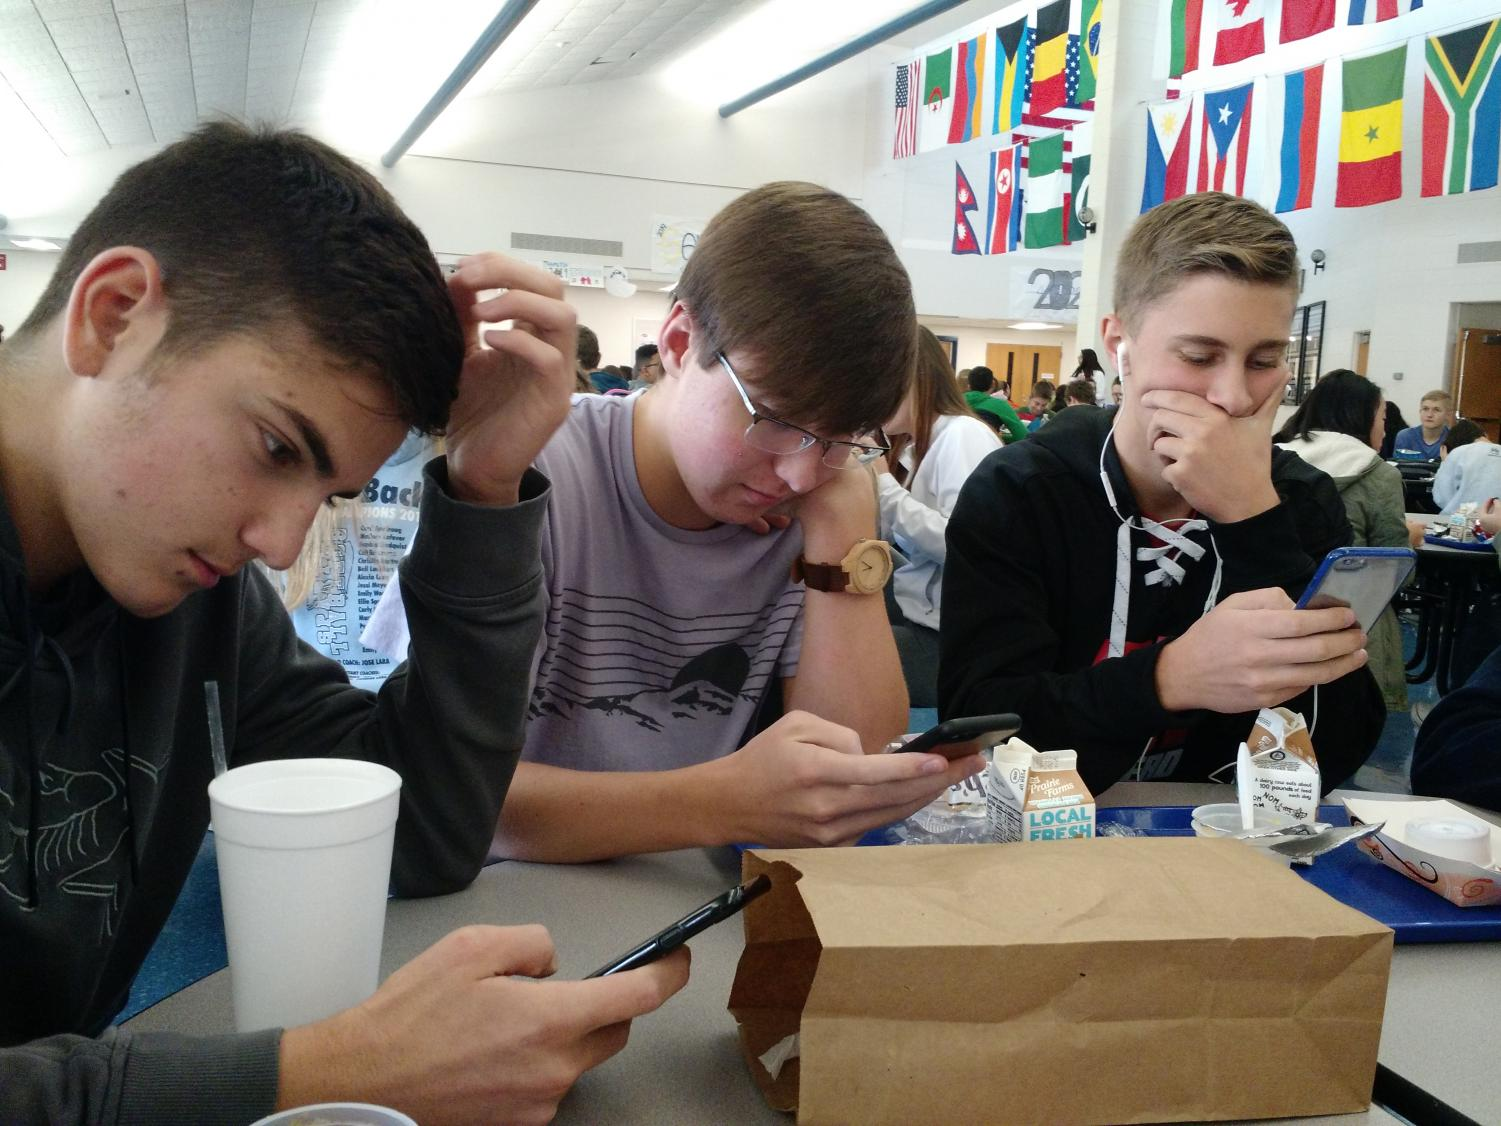 three seniors sit on their phones at lunch.